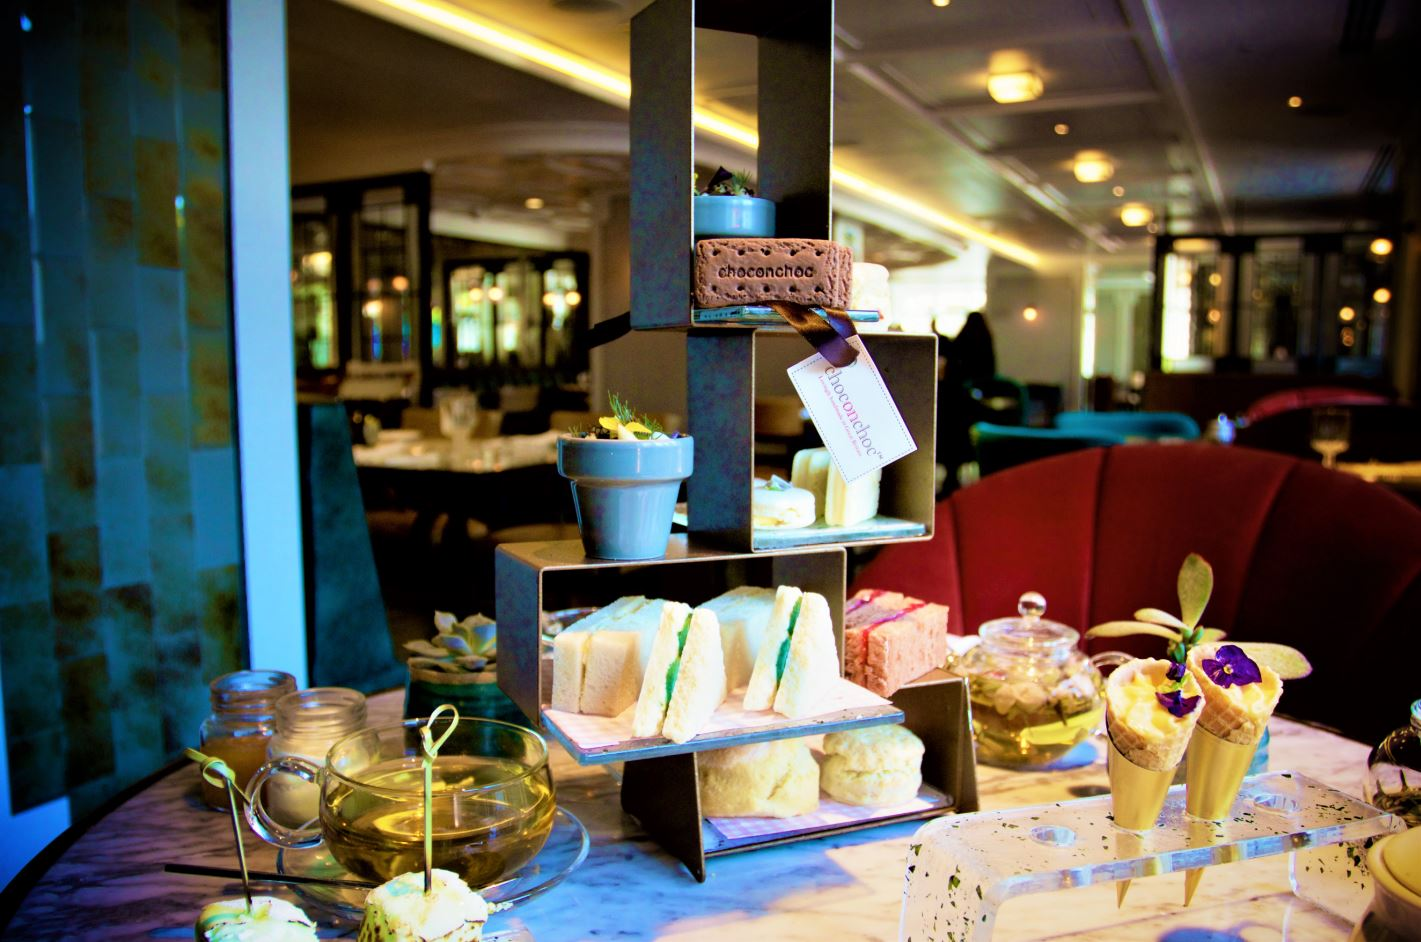 CHOC ON CHOC CELEBRATES NATIONAL AFTERNOON TEA WEEK WITH THE MARRIOTT PARK LANE HOTEL